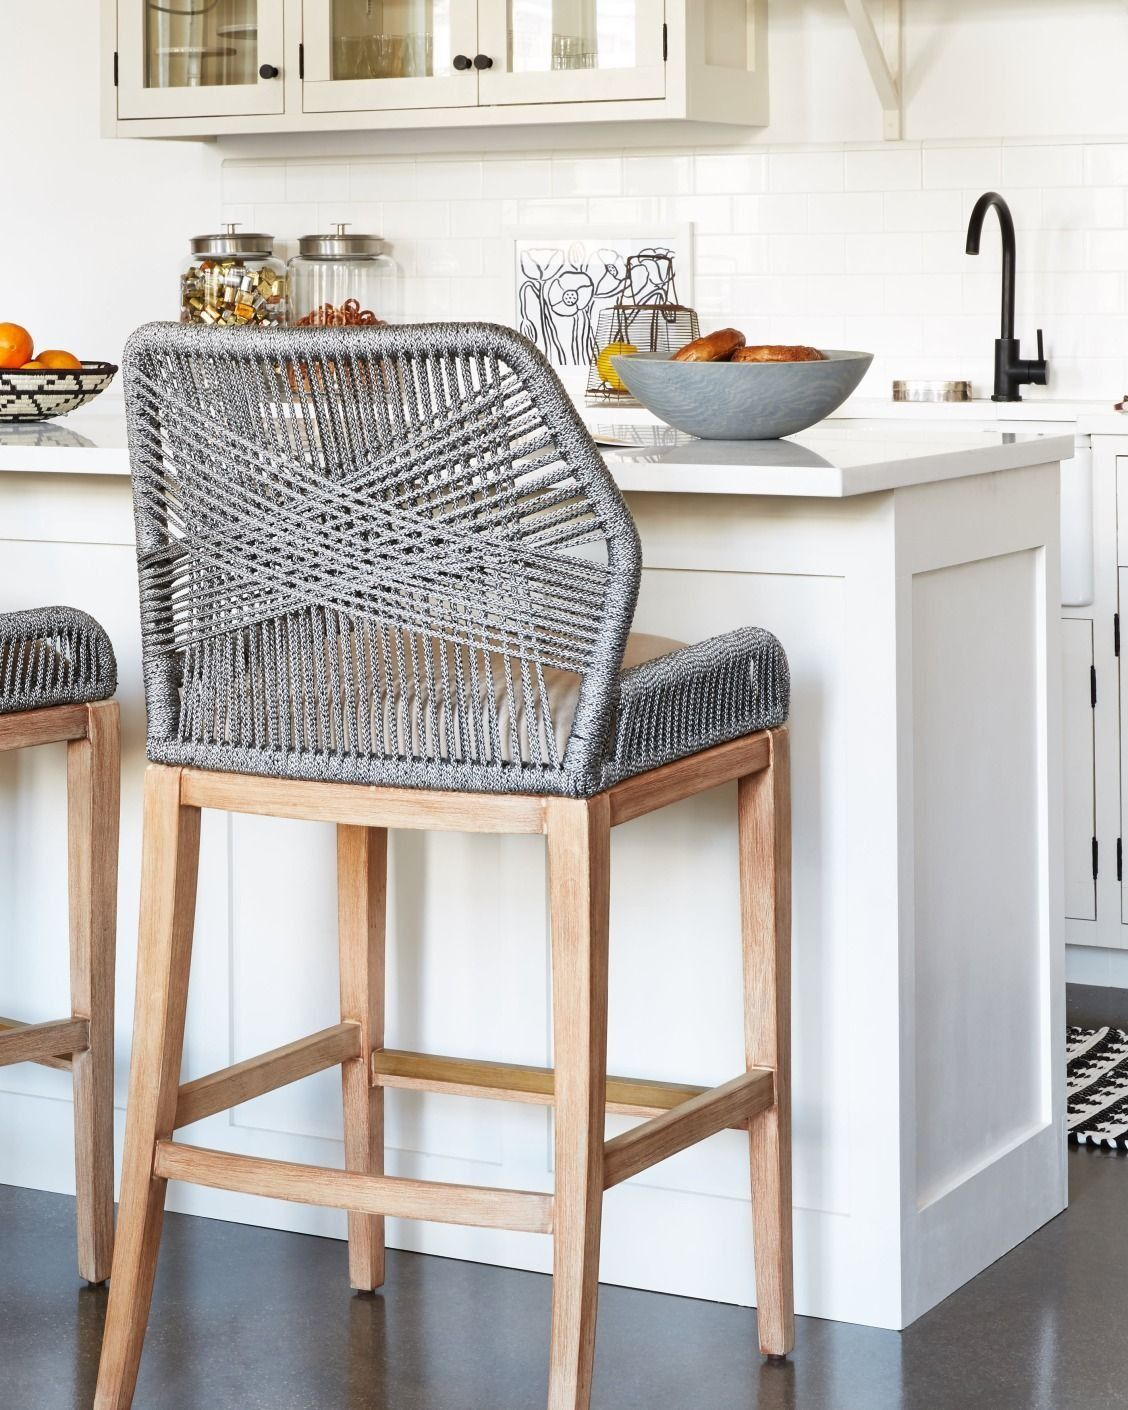 These Woven Rope Counter Stools Are Such A Fun Unexpected Kitchen Accent Home Decor Kitchen Kitchen Stools Kitchen Bar Stools